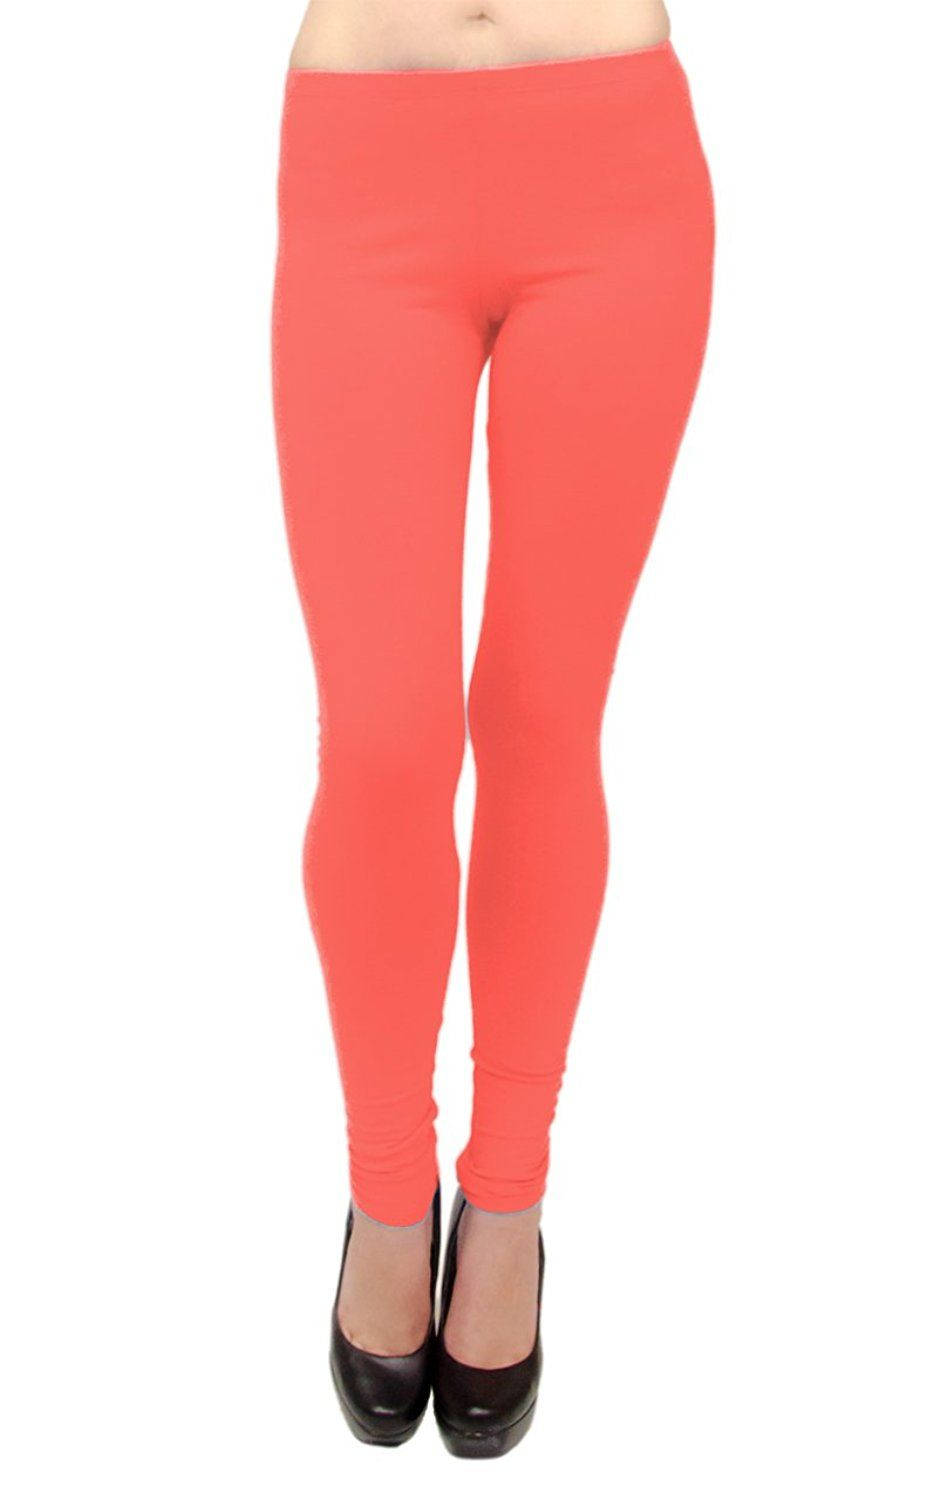 4cd1cfdc5e3ff4 Vivian's Fashions Extra Long Leggings - Cotton (Junior and Junior Plus  Sizes) * Read more at the image link.